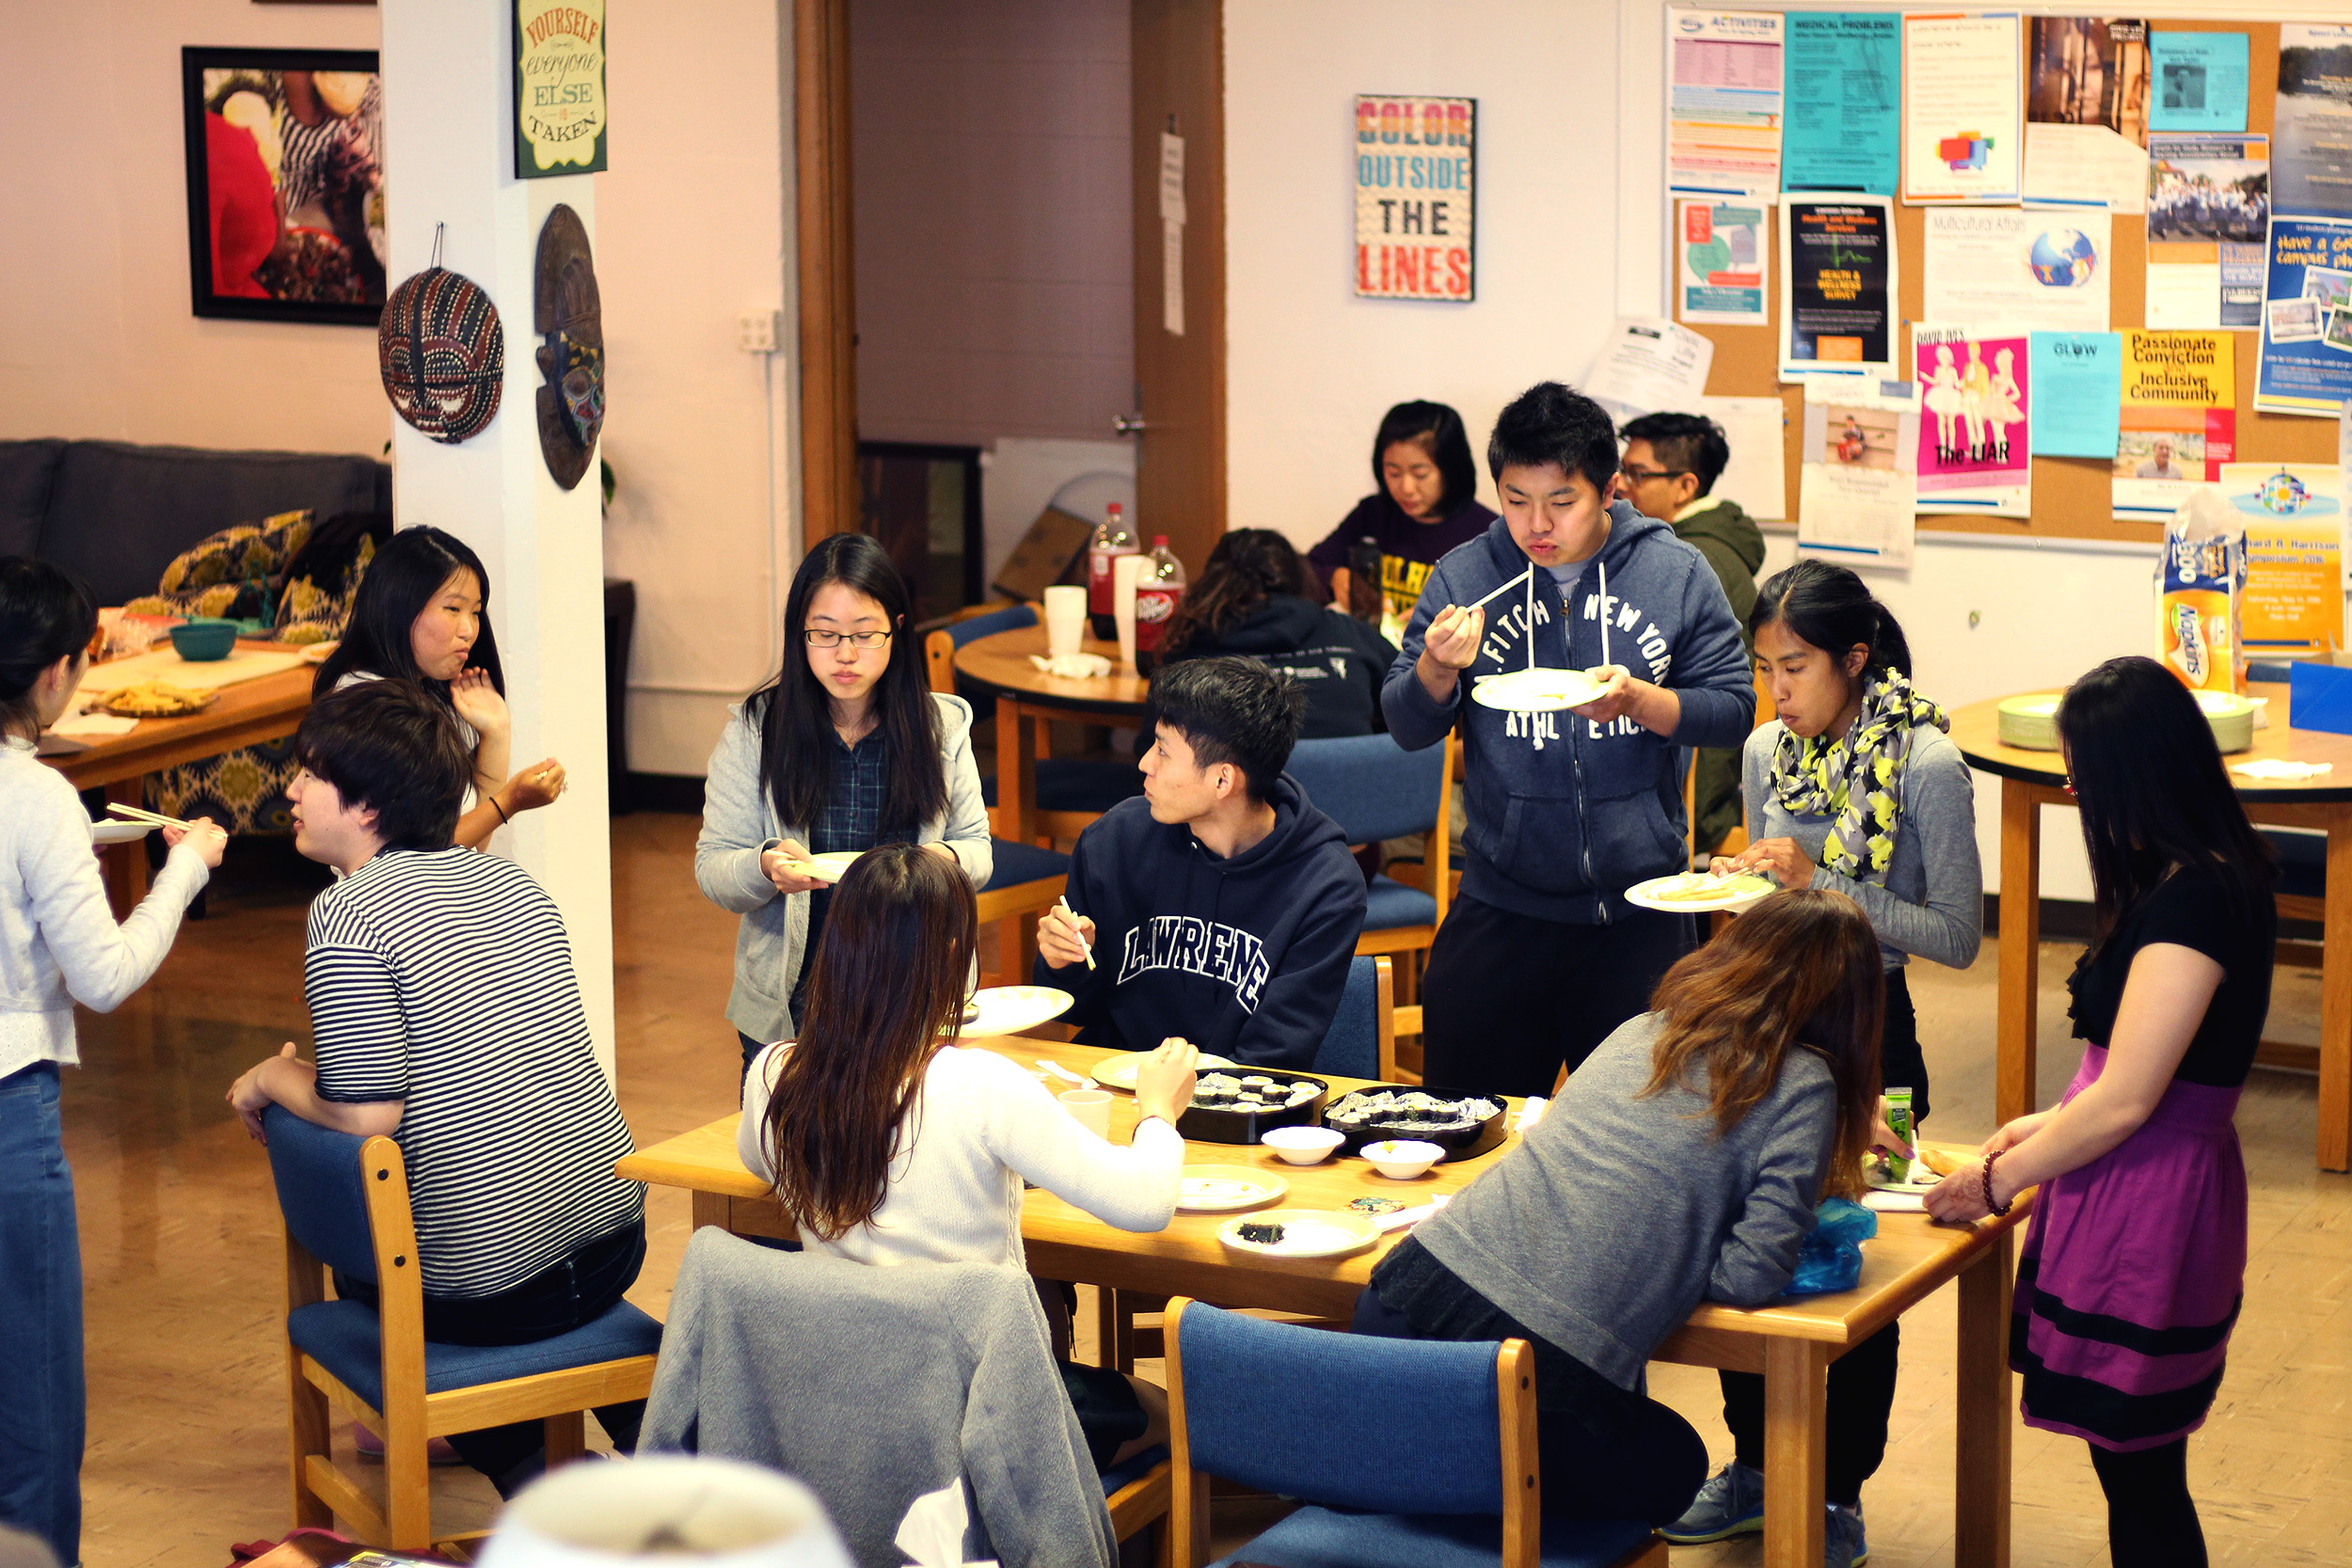 Students enjoy rolls and conversation in the Diversity Center.